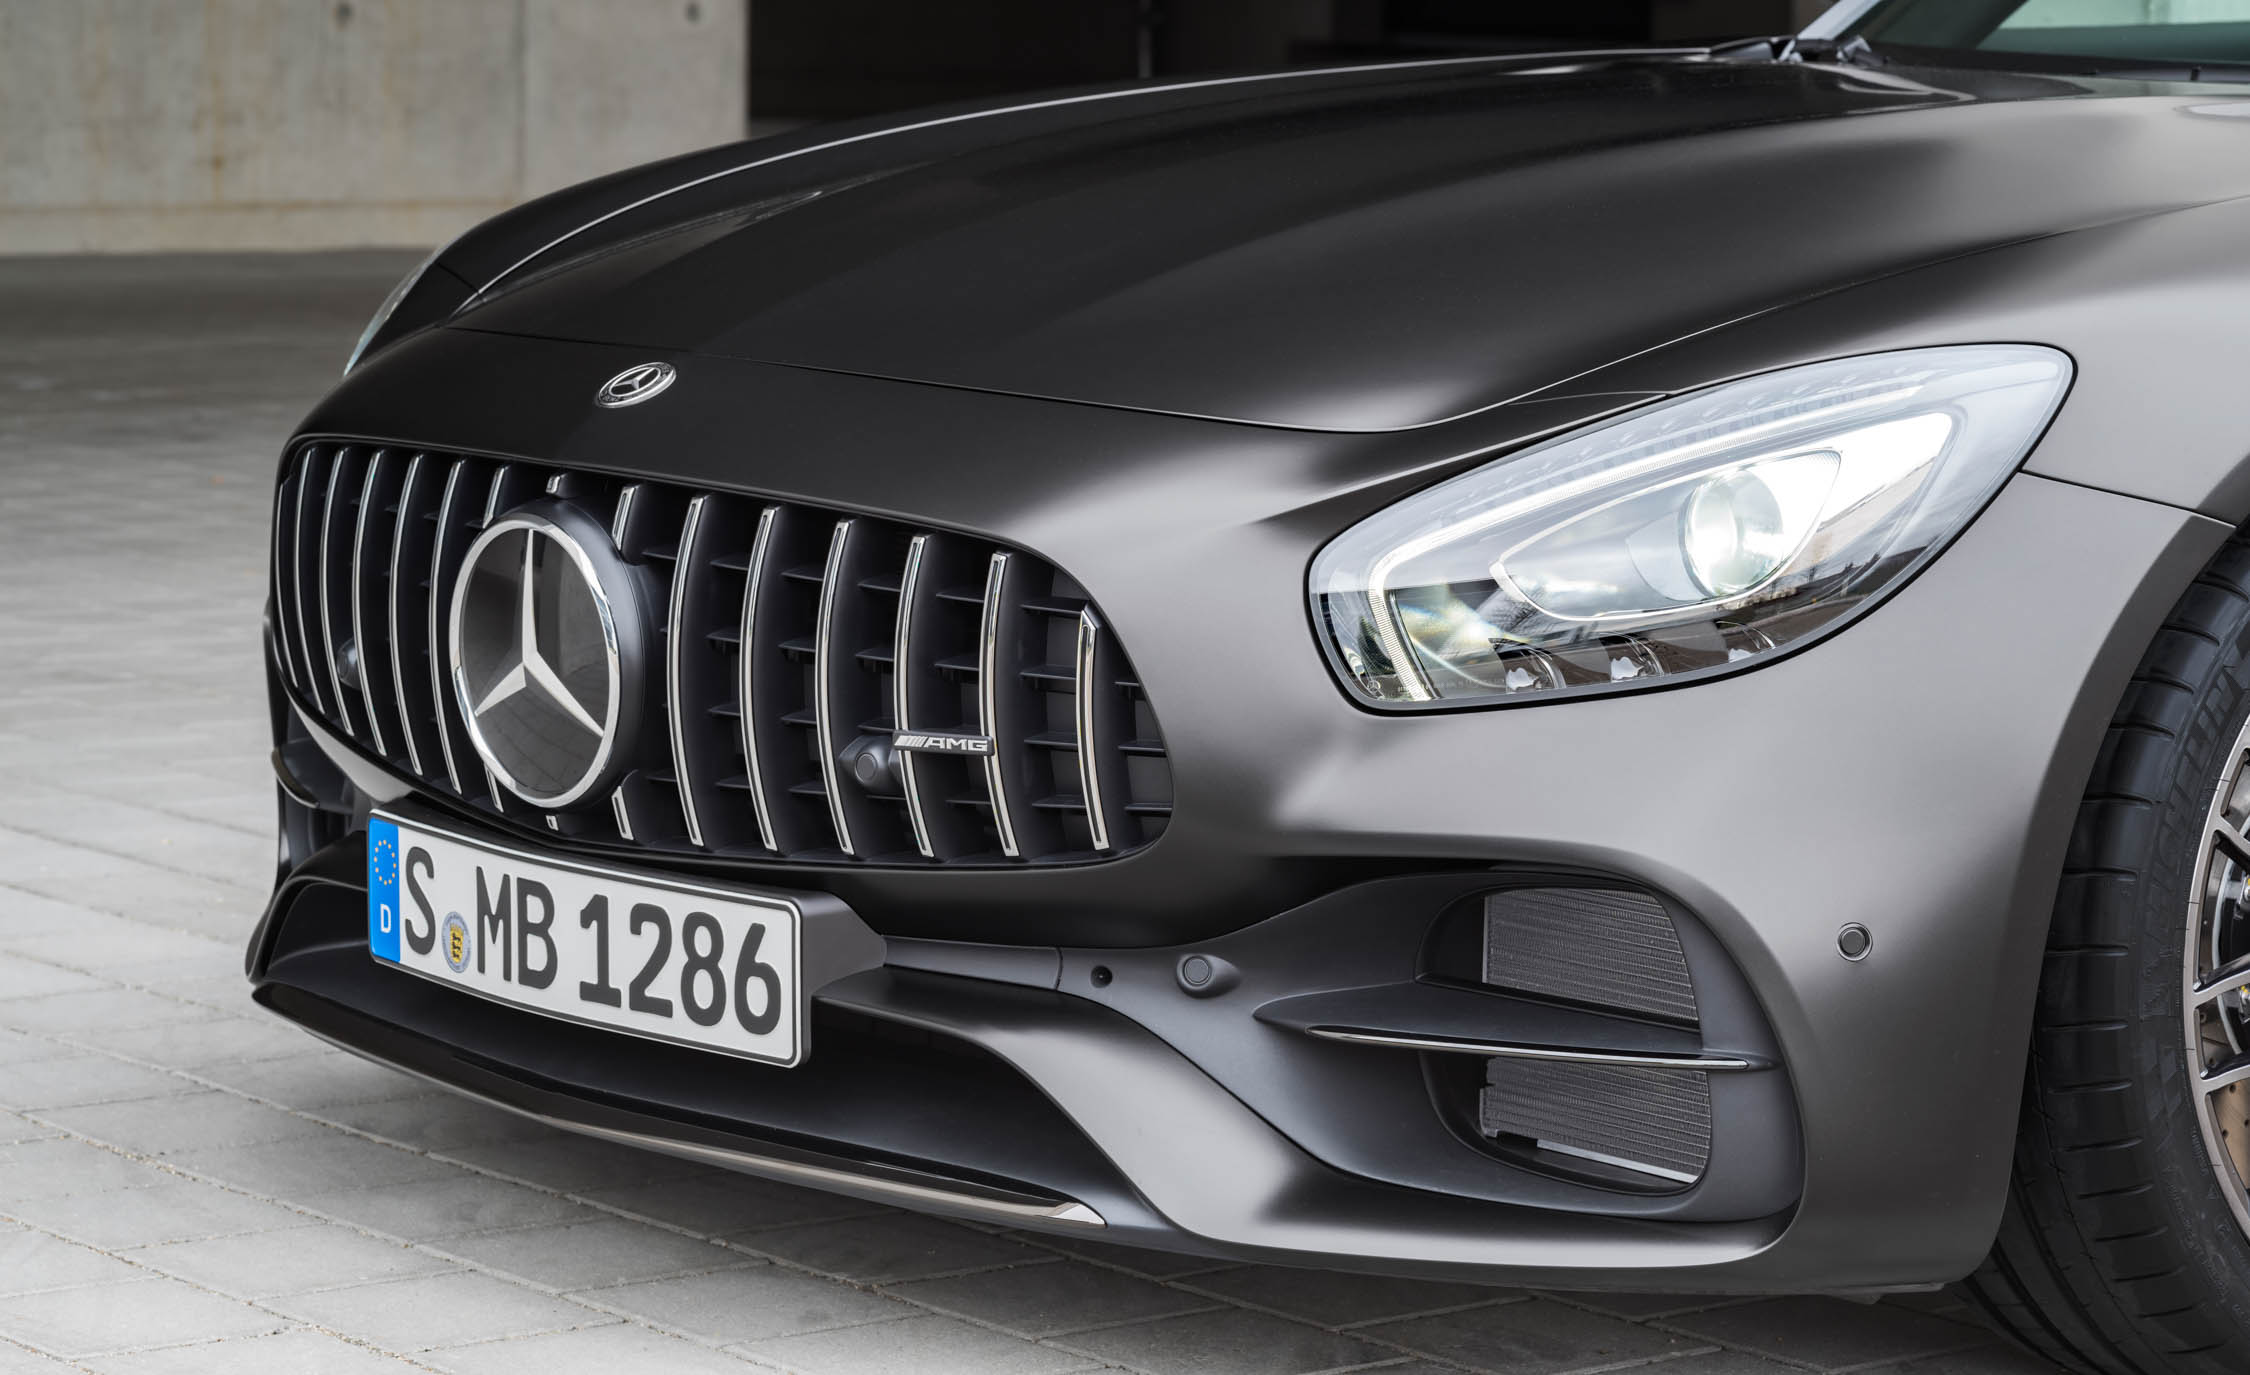 2018 Mercedes Amg Gt C Exterior View Grille And Bumper (Photo 8 of 23)